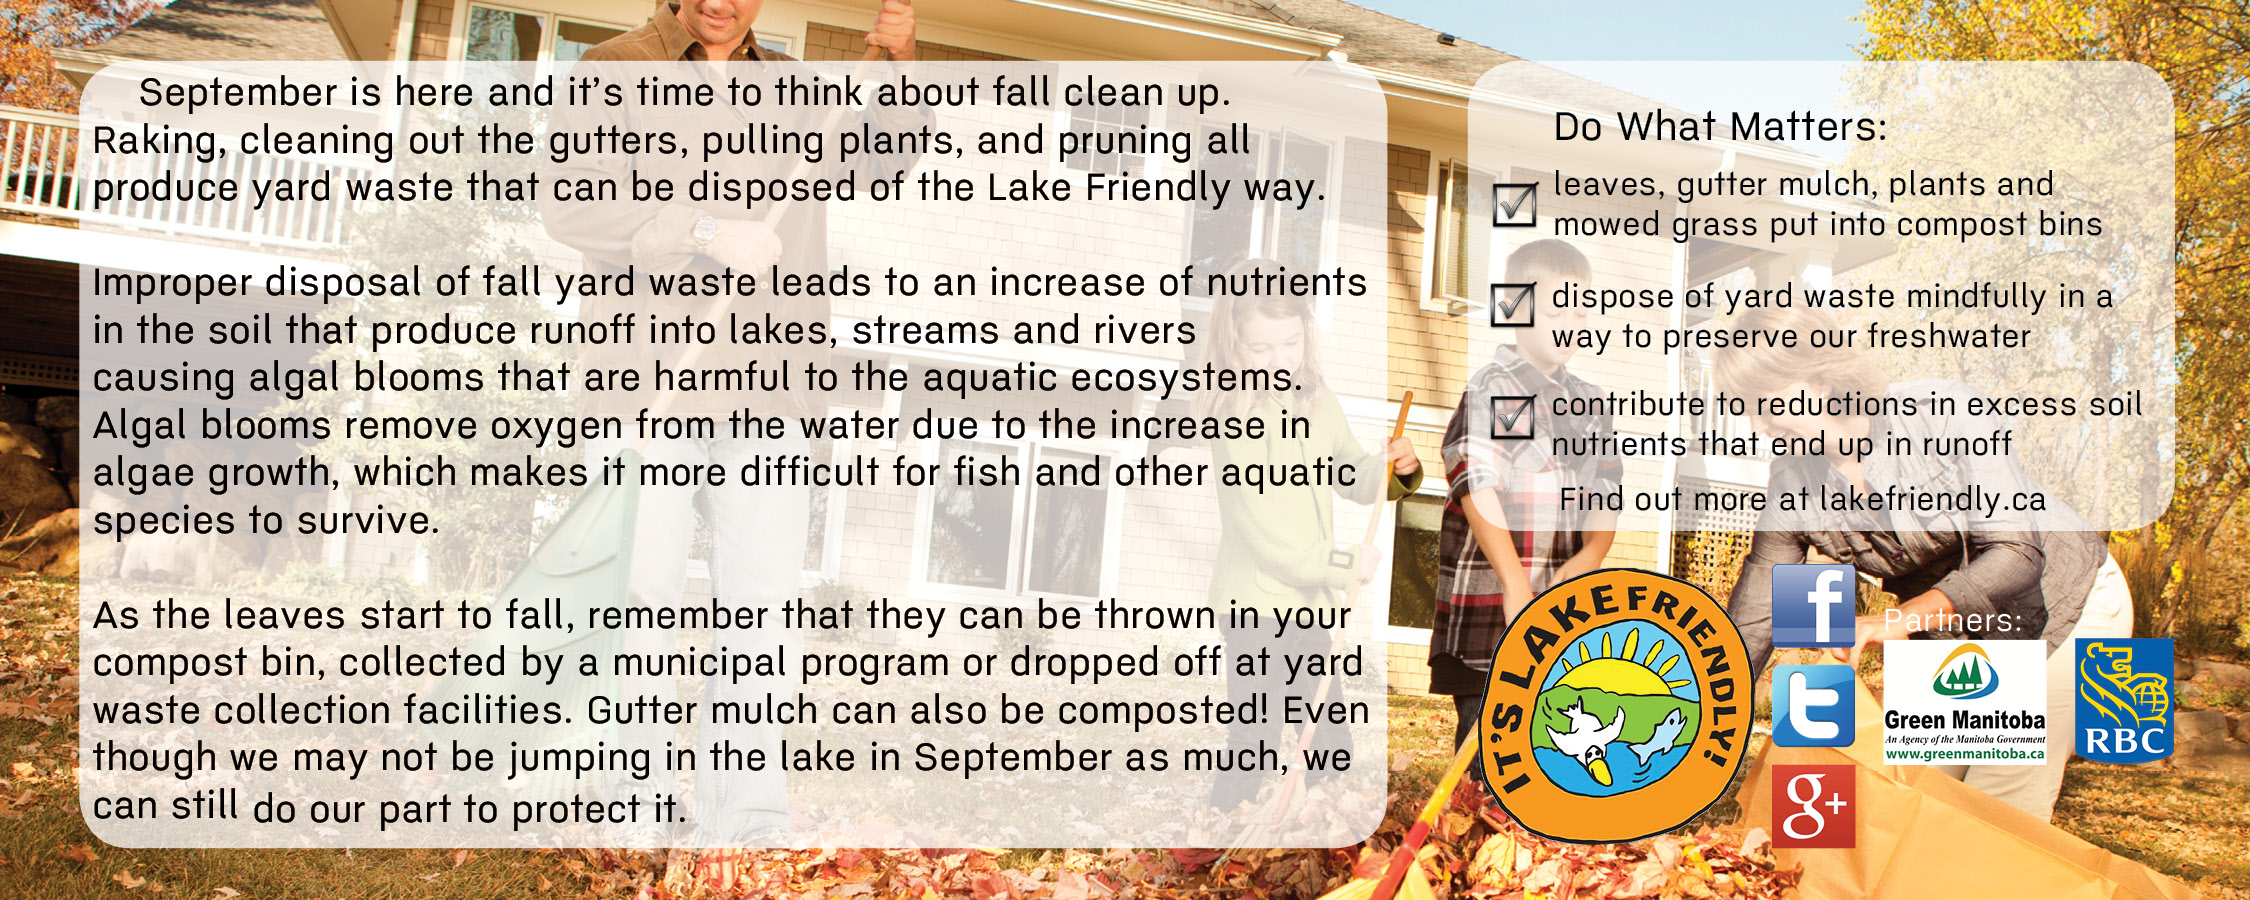 Lake Friendly Tips September